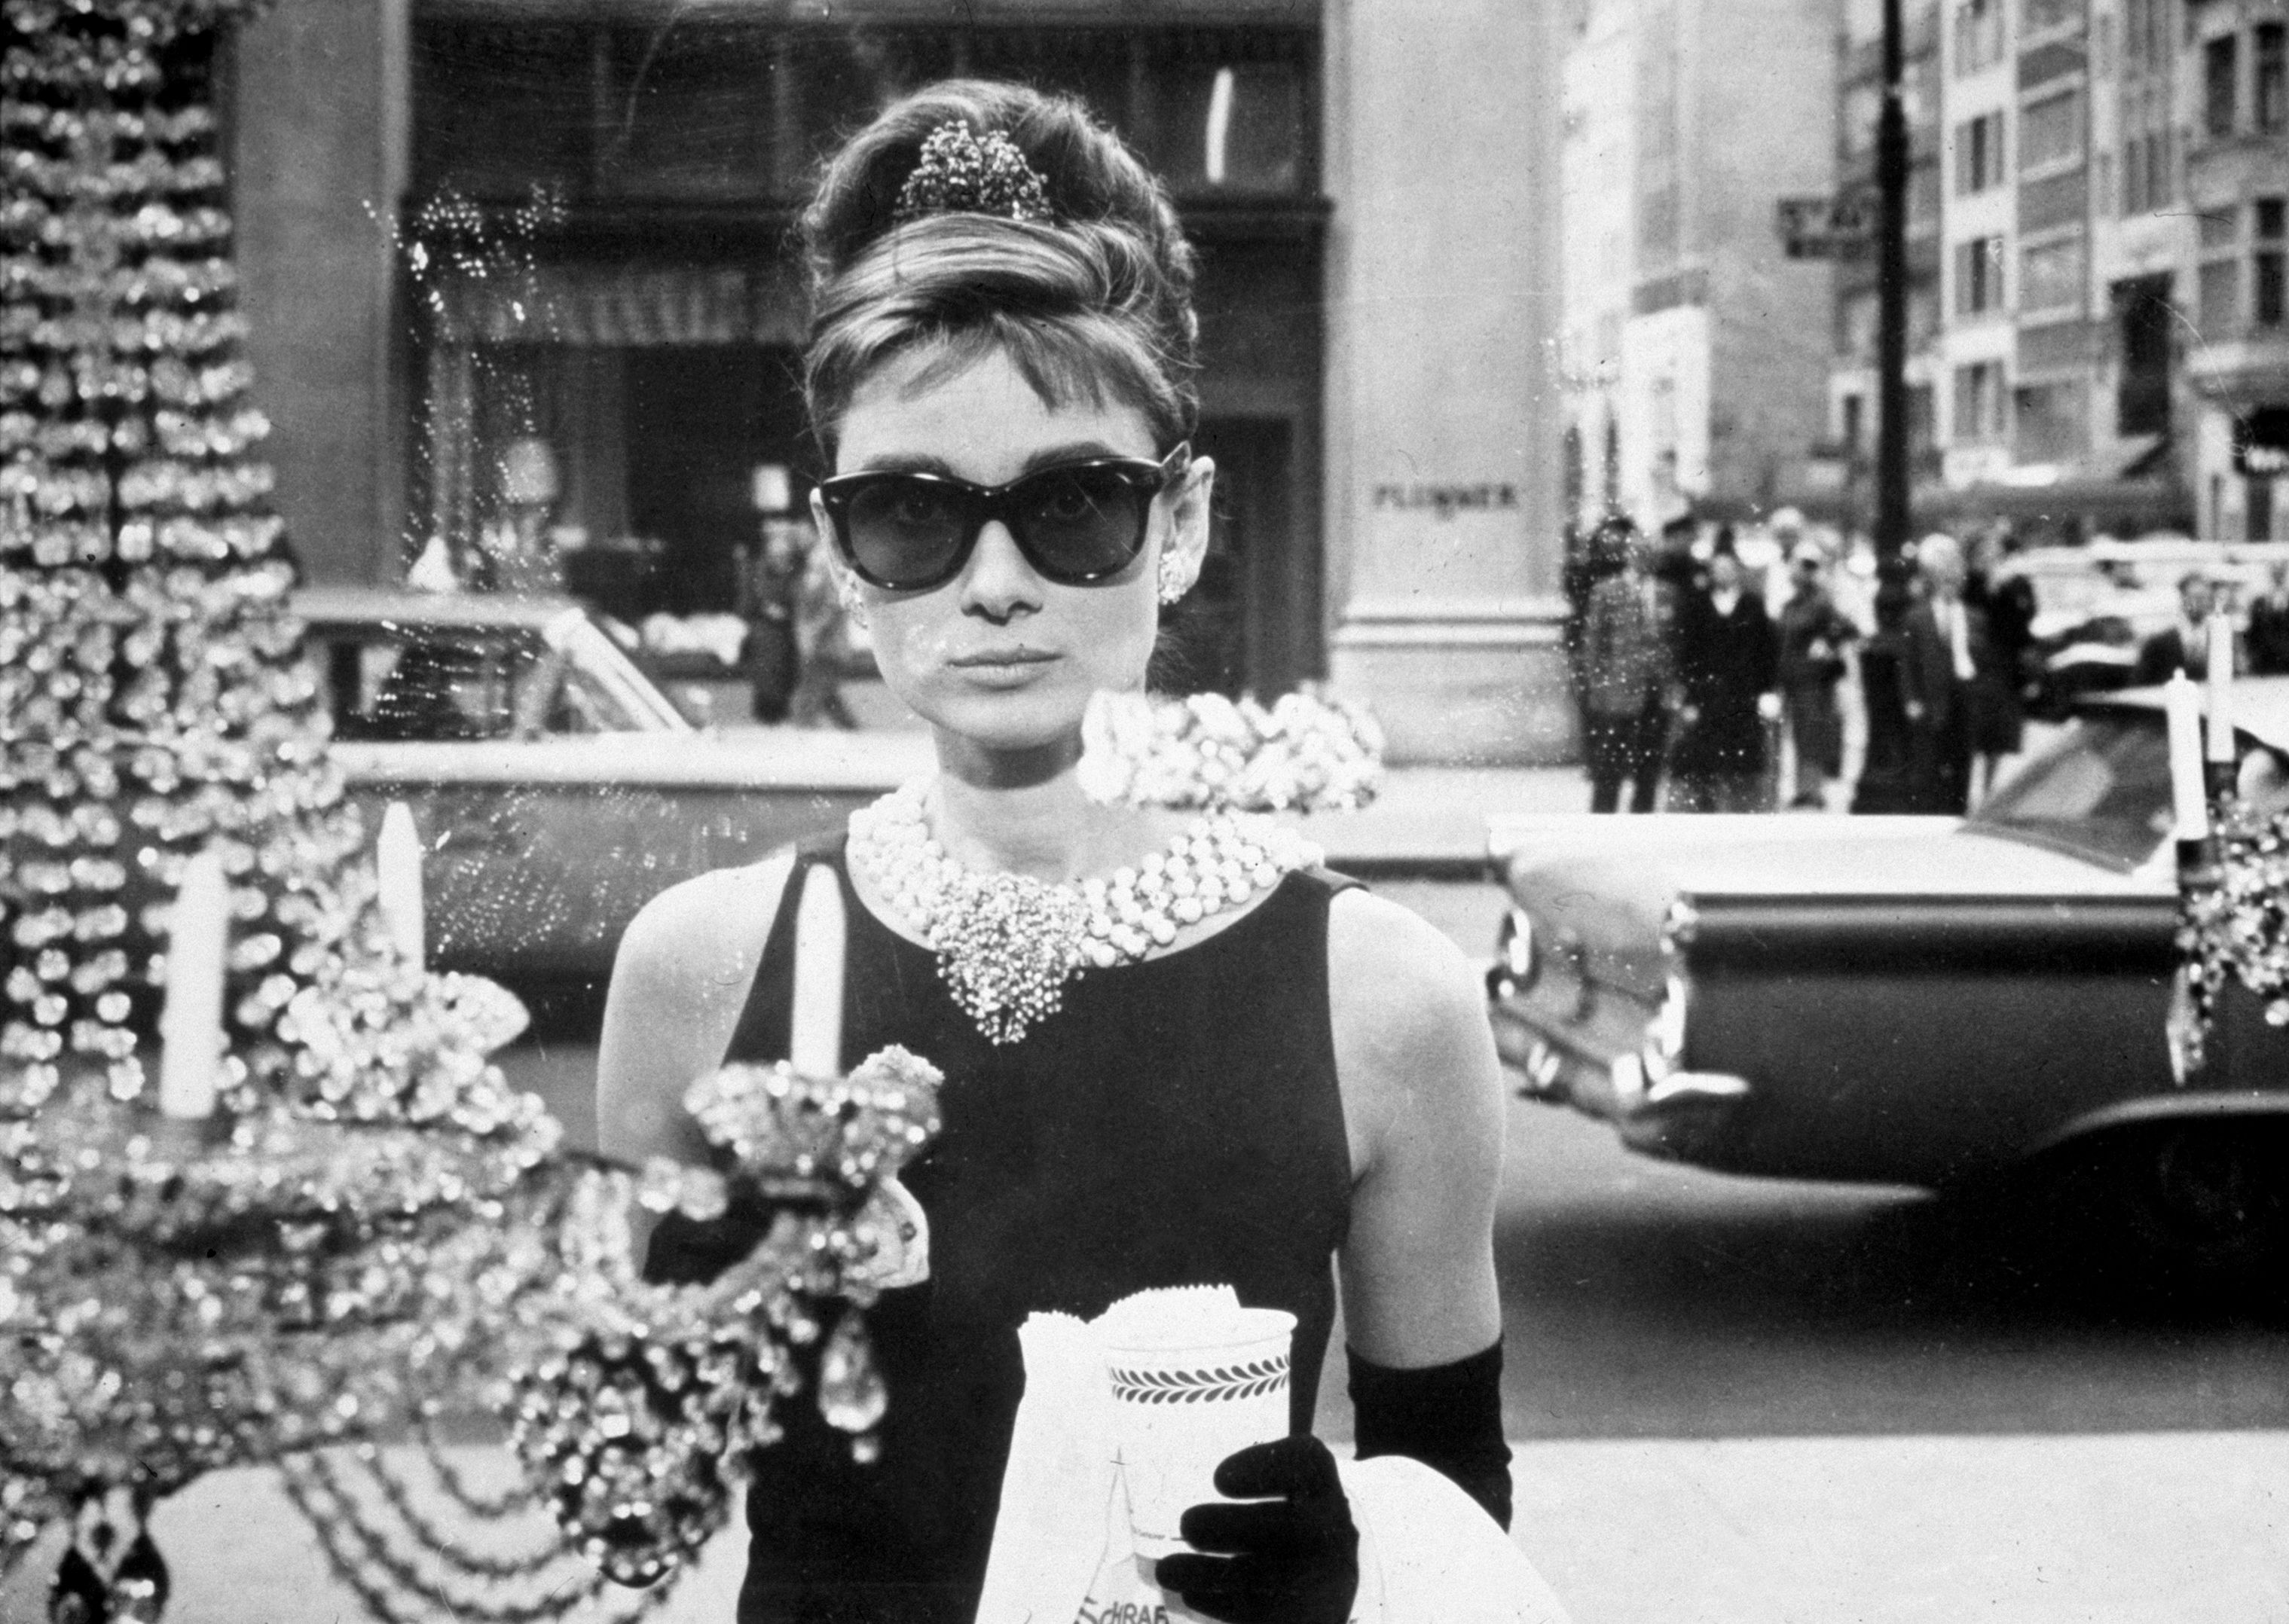 eafa36fd7d8 1474910367-hbz-movies-coming-to-netflix-october-breakfast-at-tiffanys-getty.jpg